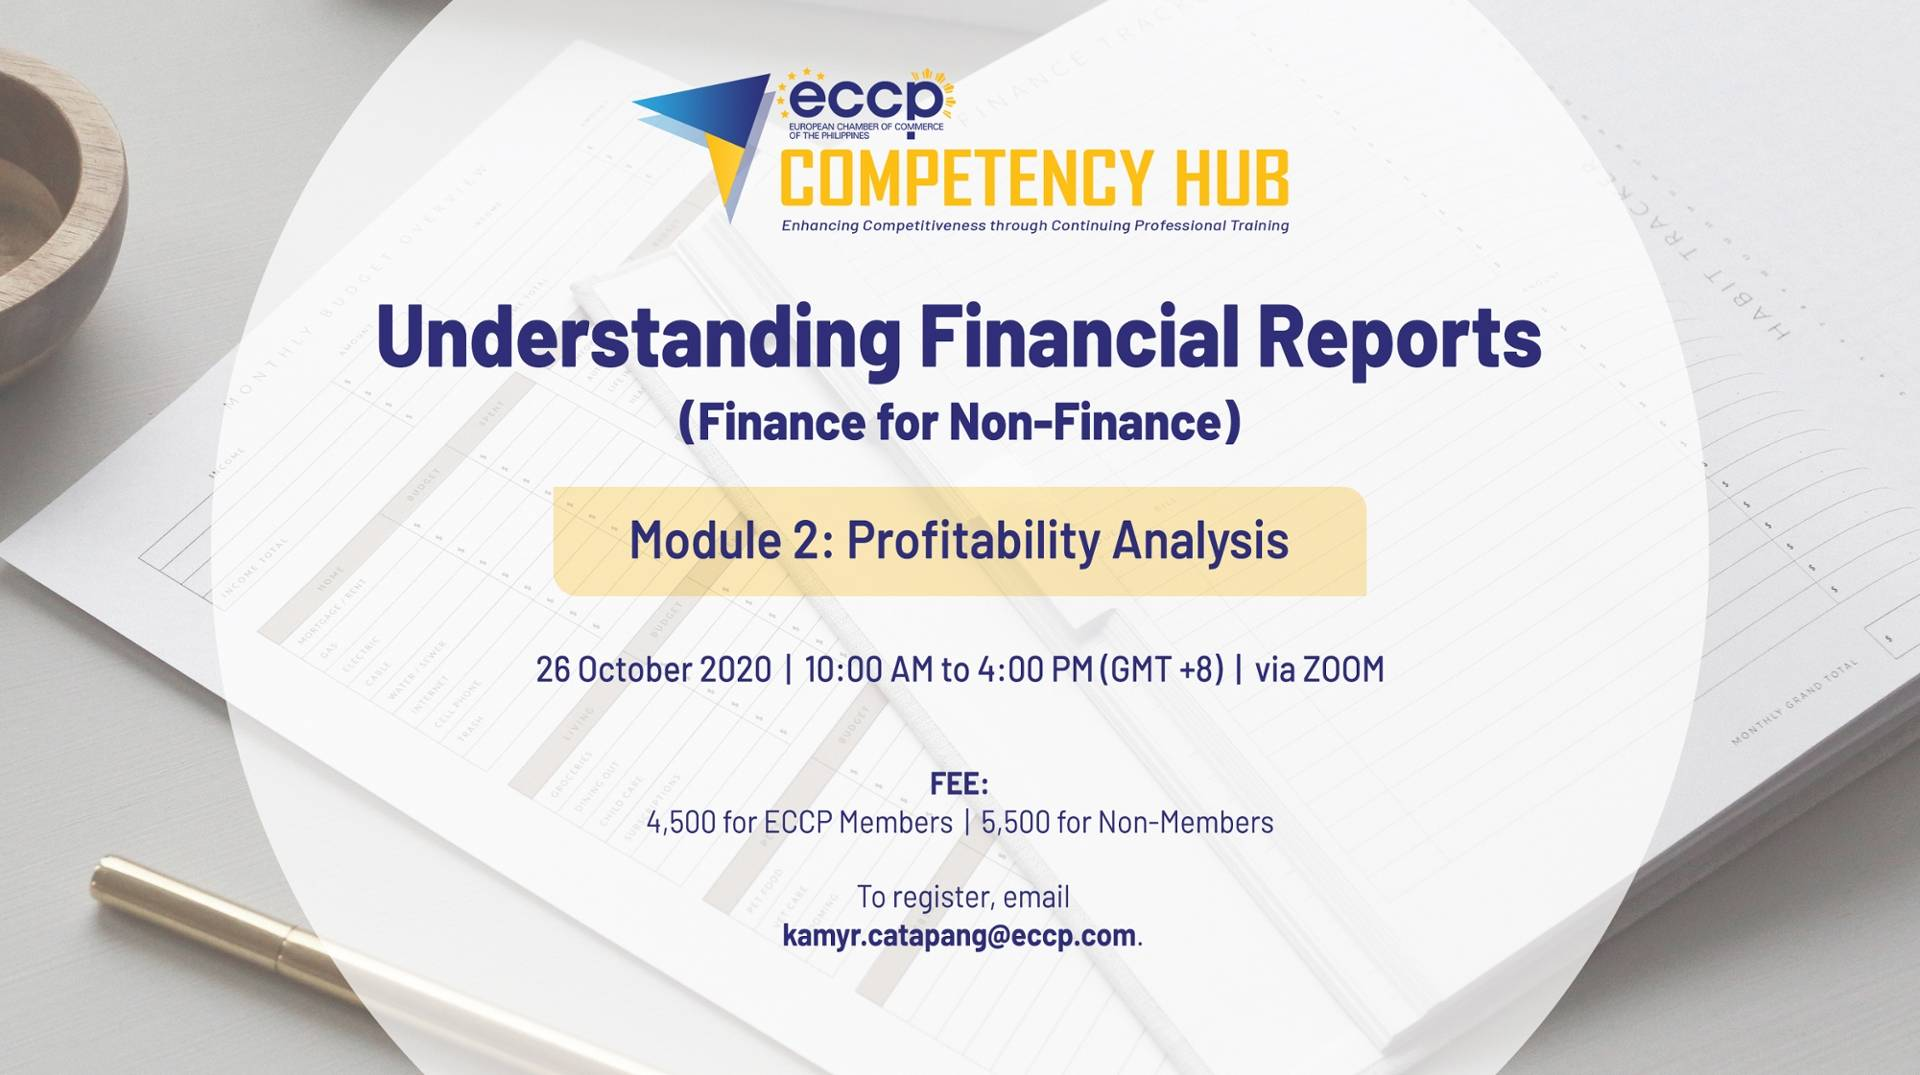 Understanding Financial Reports: Module 2 - Profitability Analysis Module